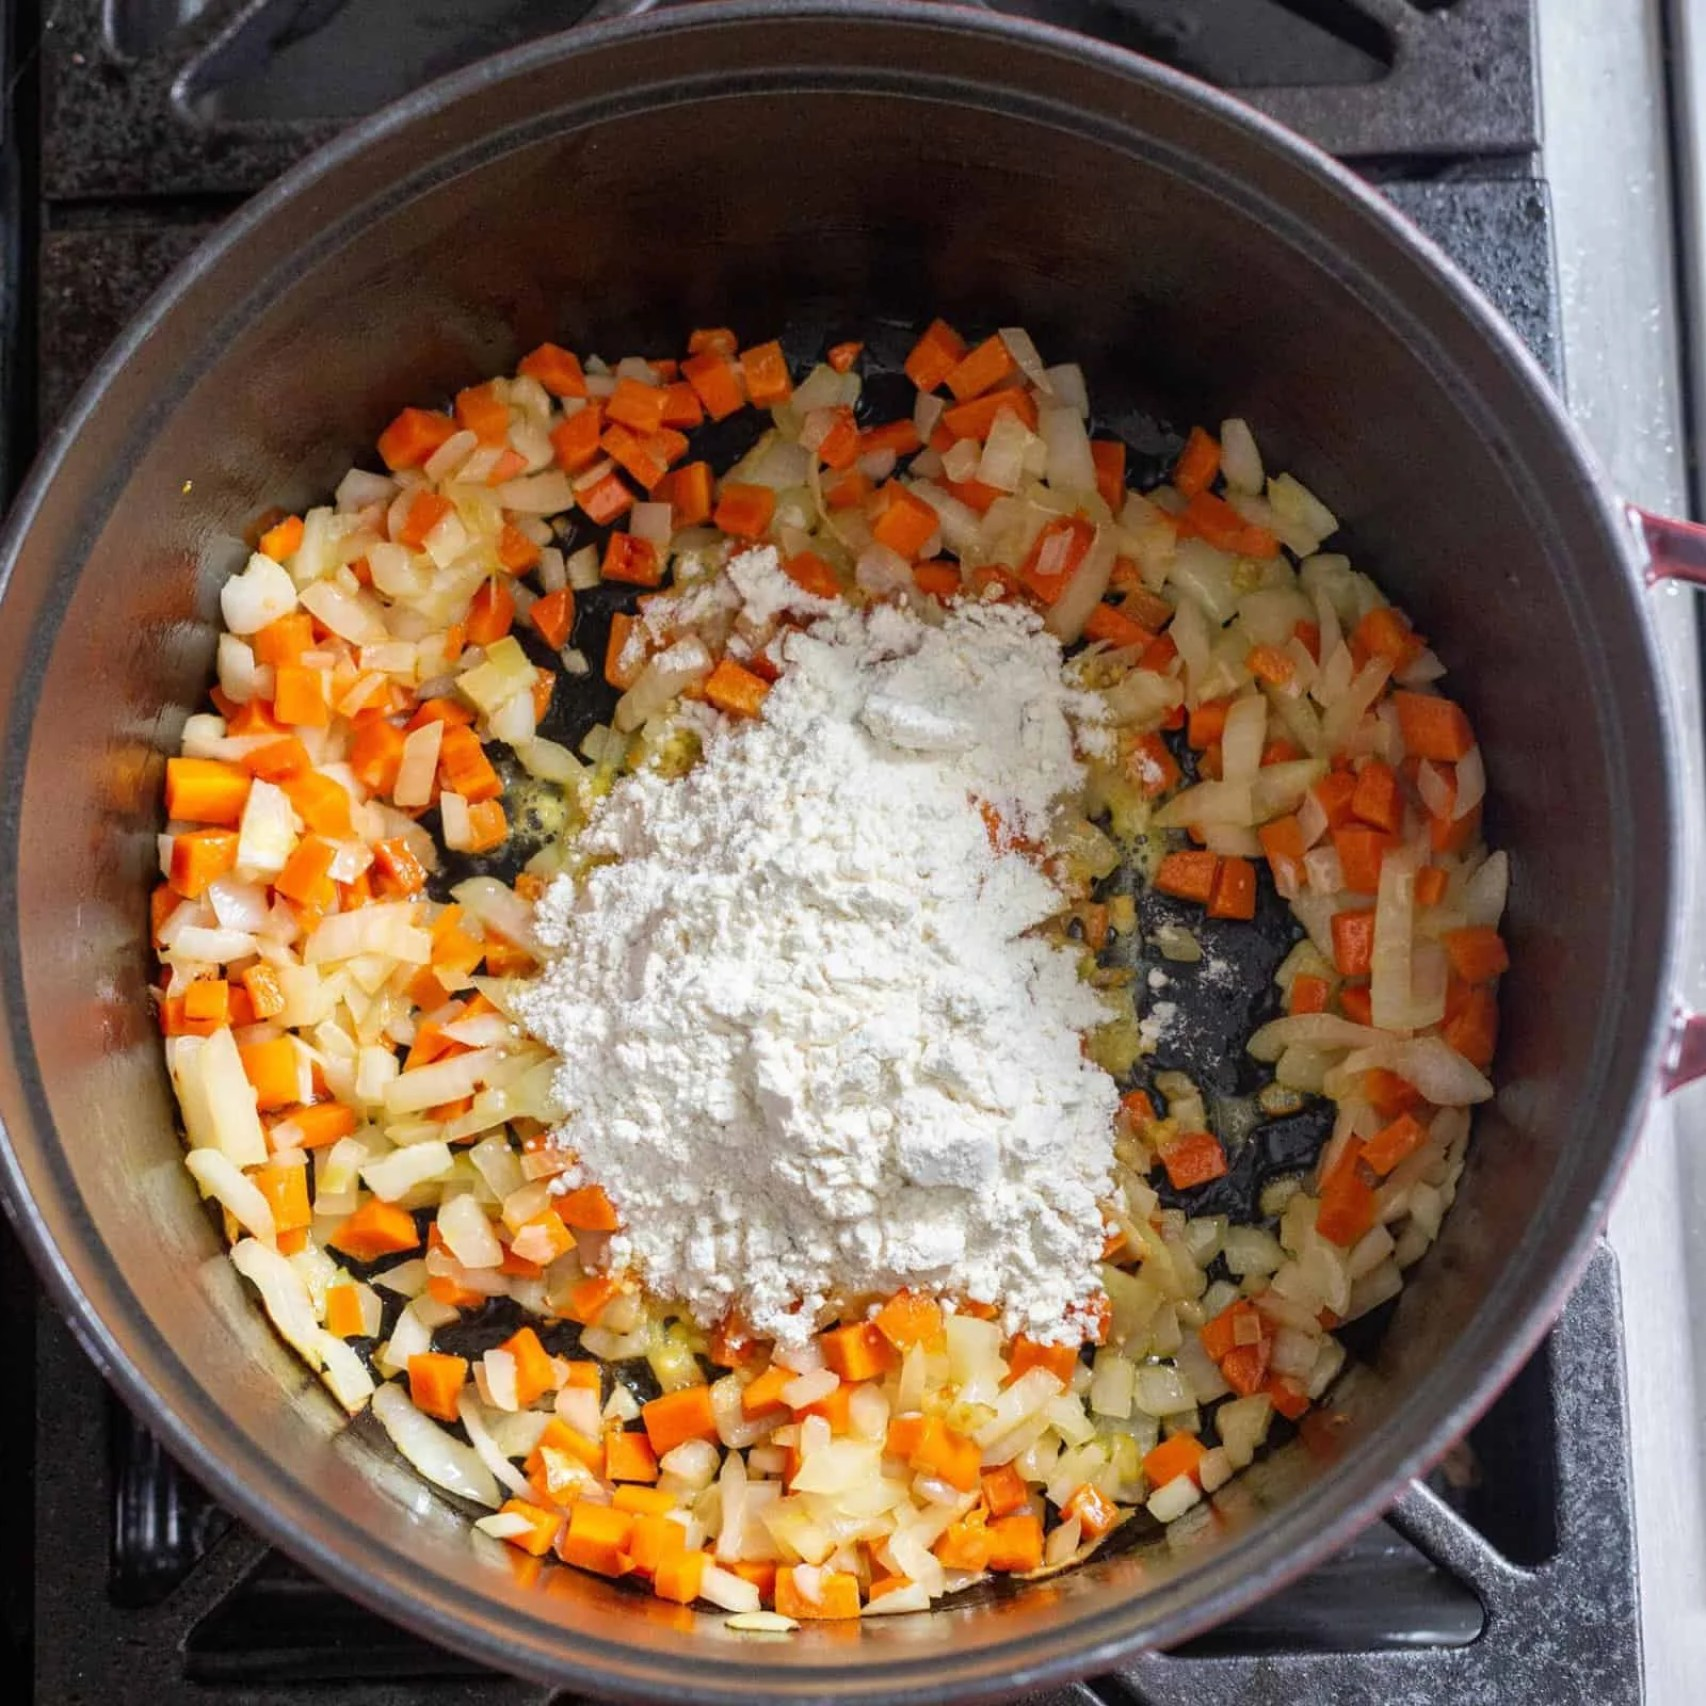 sauteed onions and carrots with flour in the pot